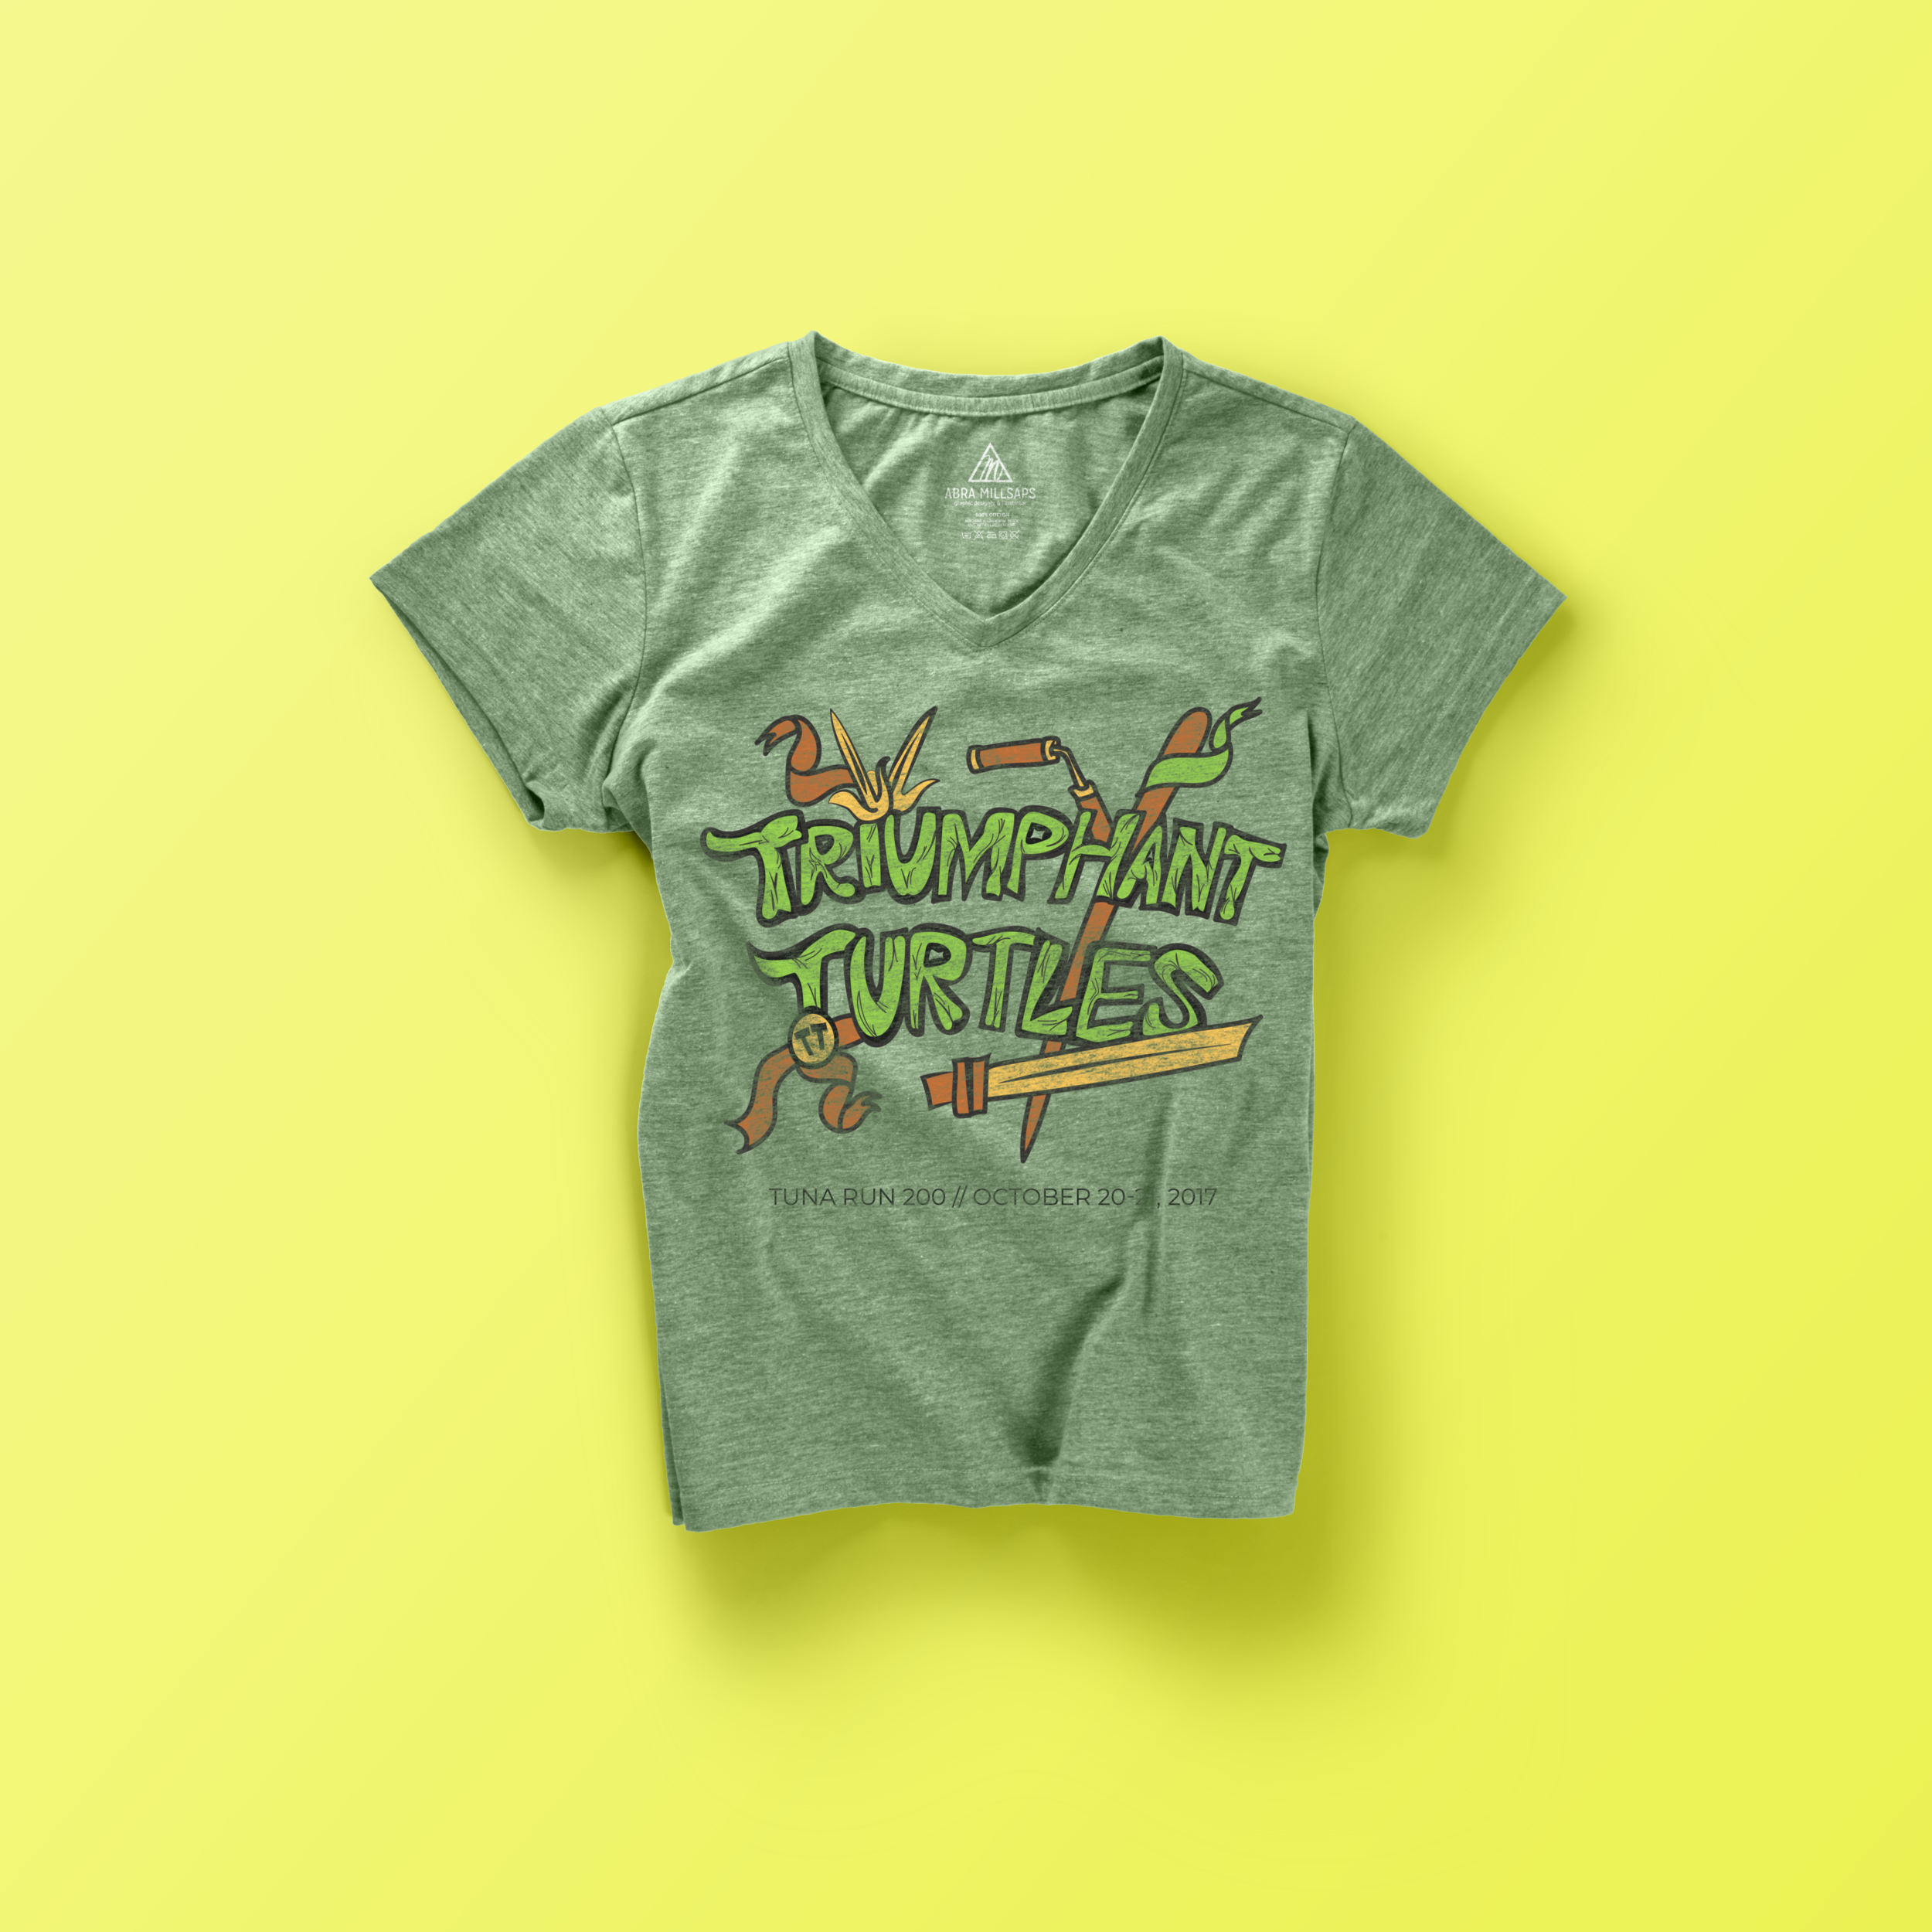 Triumphant Turtles Shirt Mockup.png